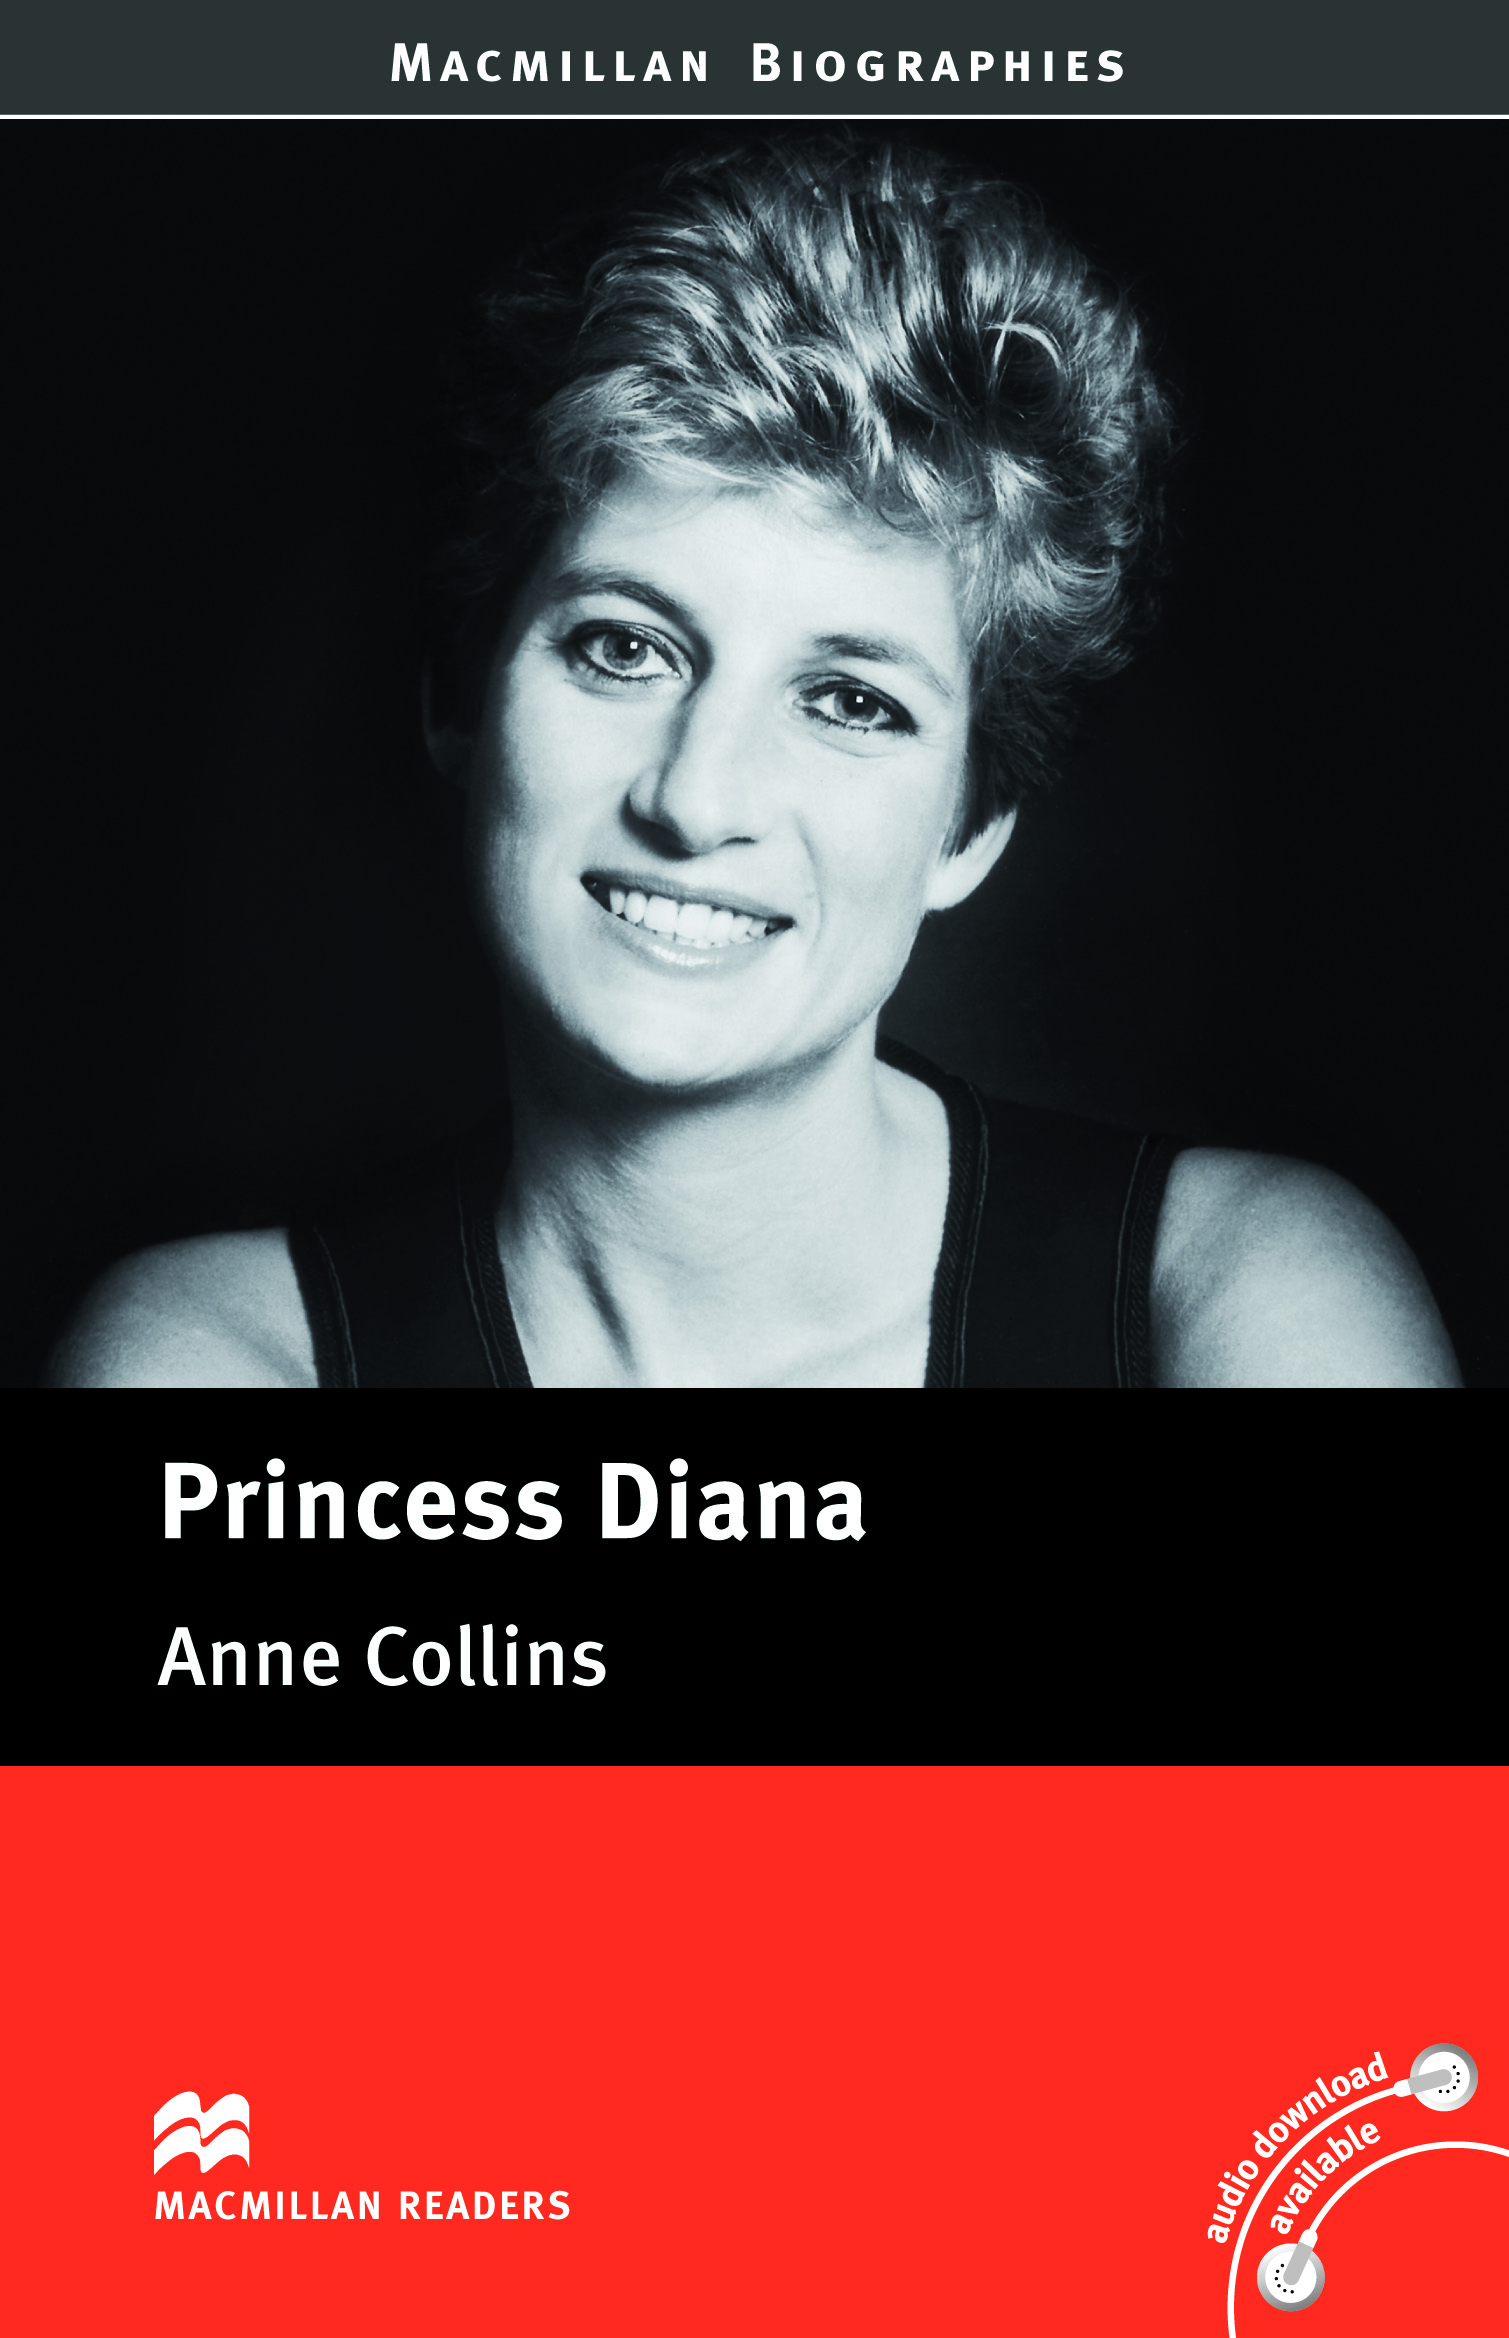 Macmillan Readers: Princess Diana Biography without CD